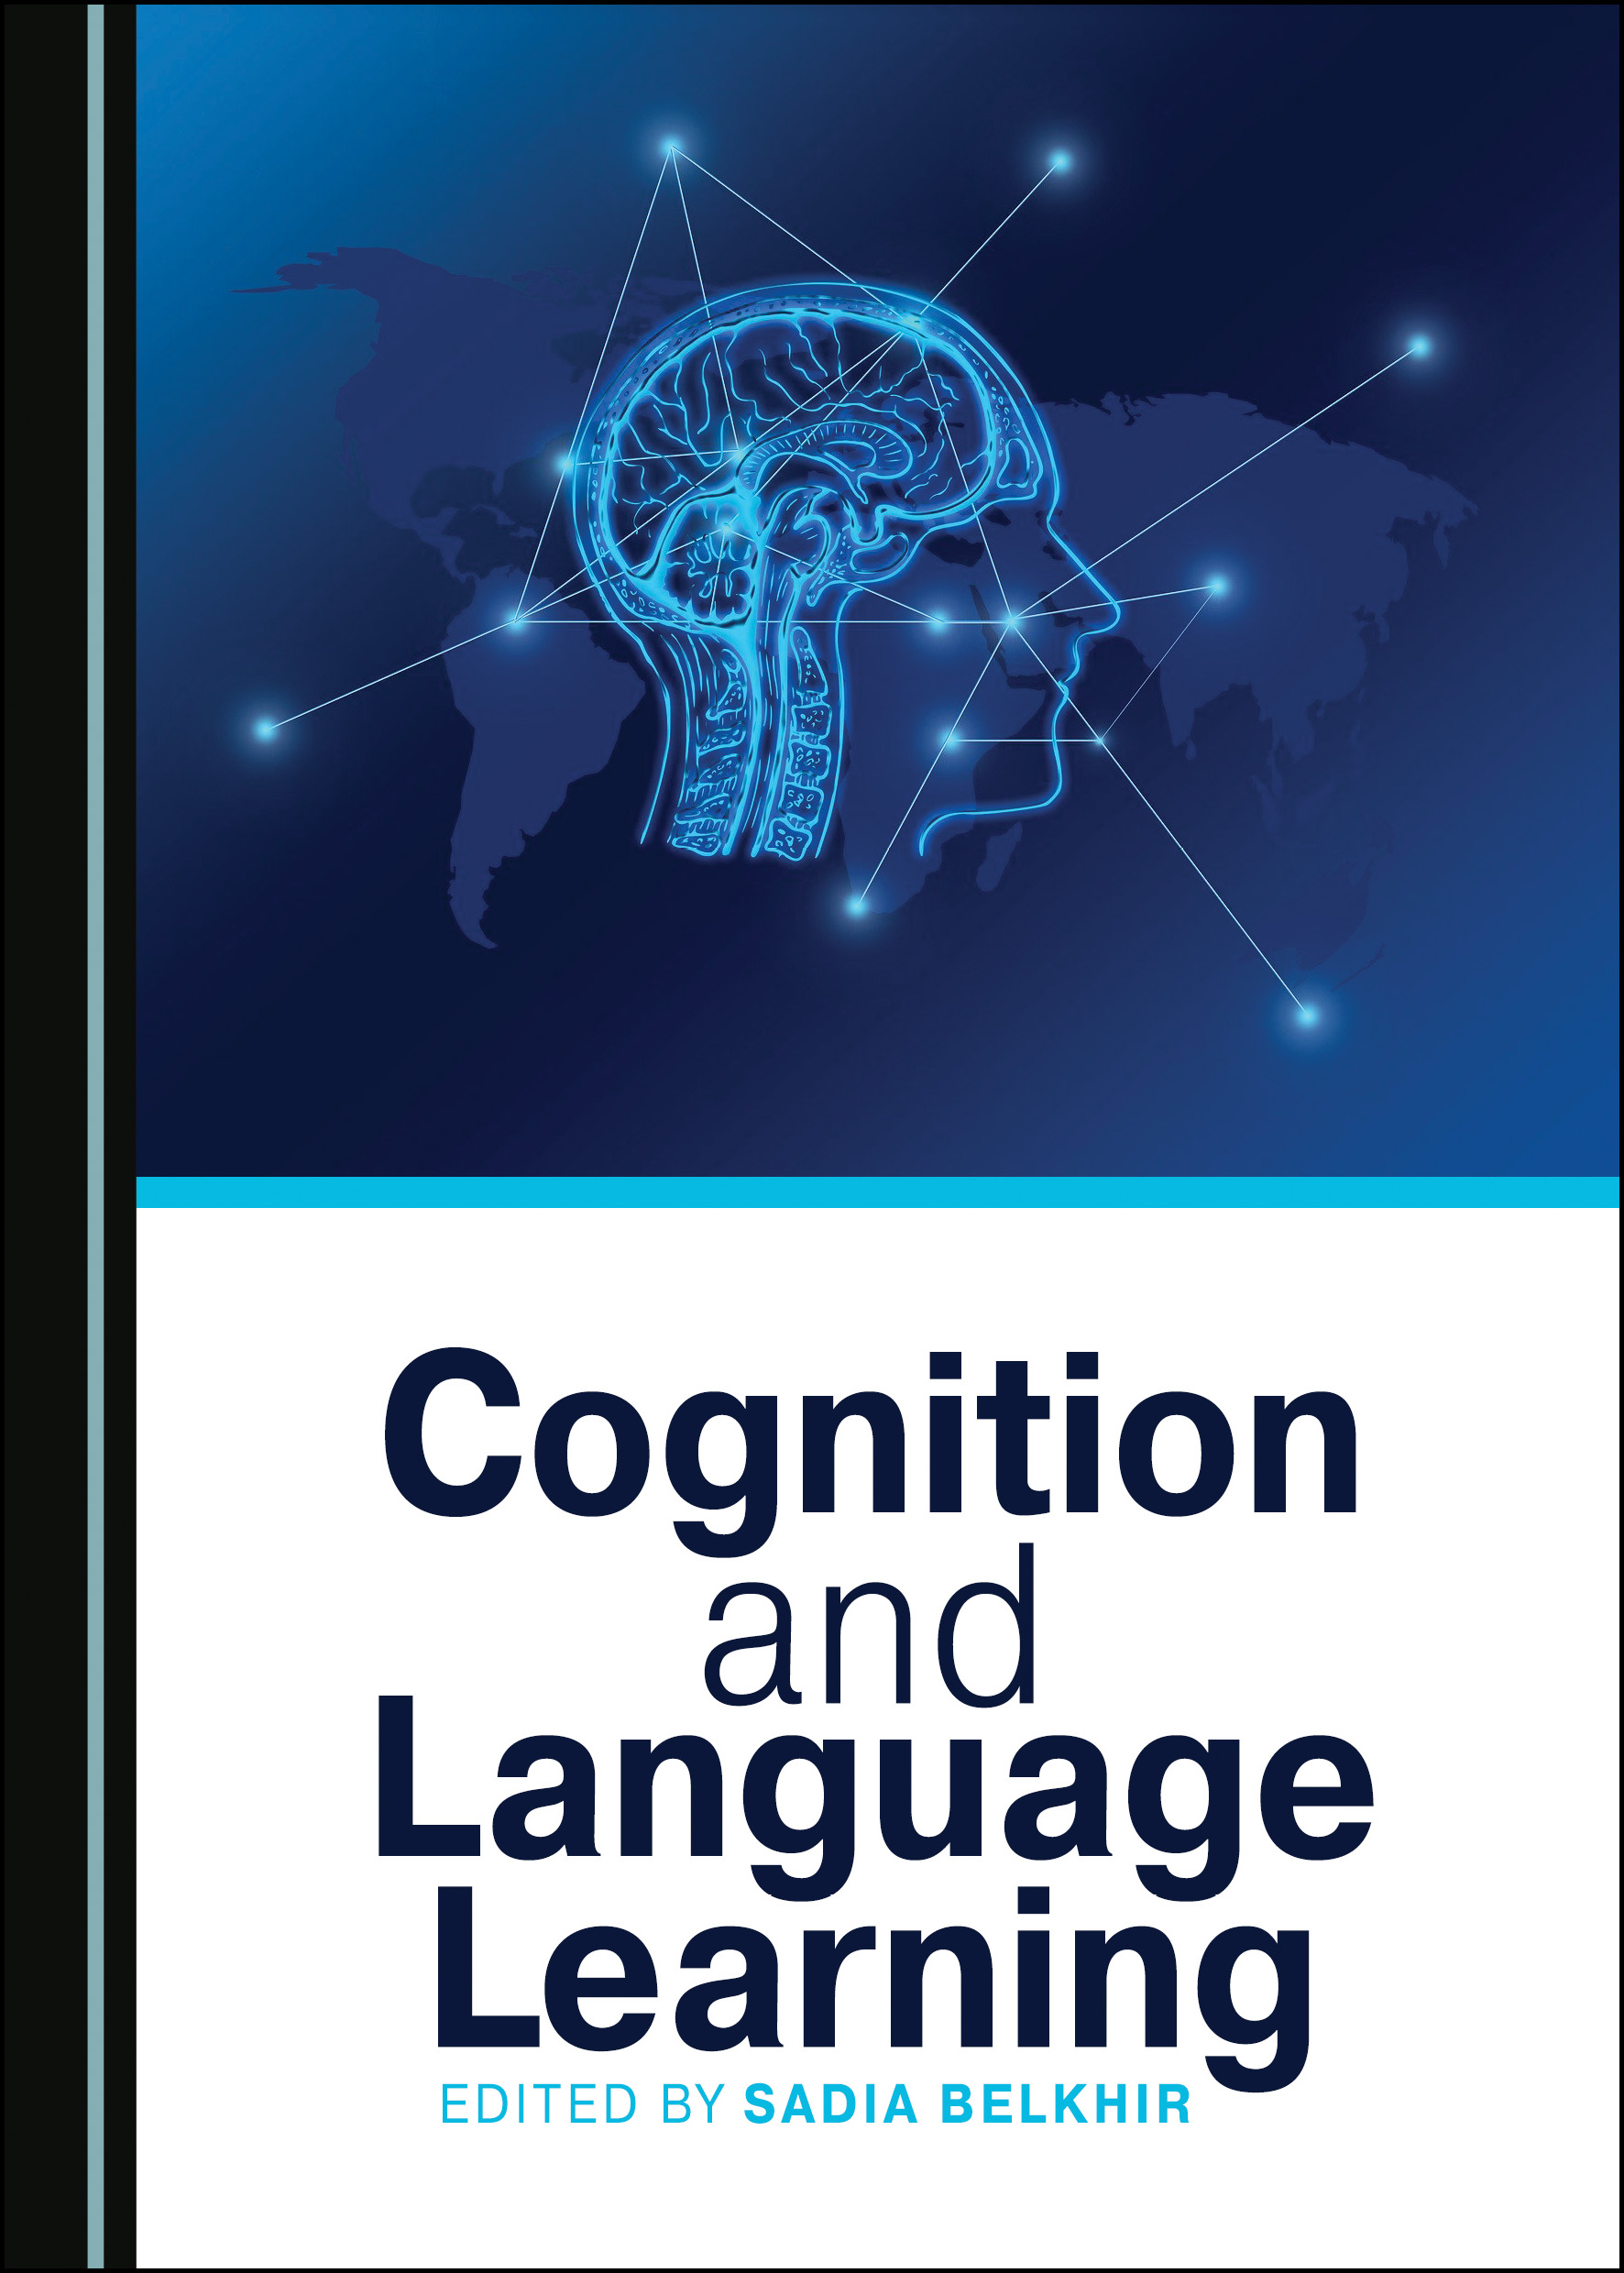 Cognition and Language Learning